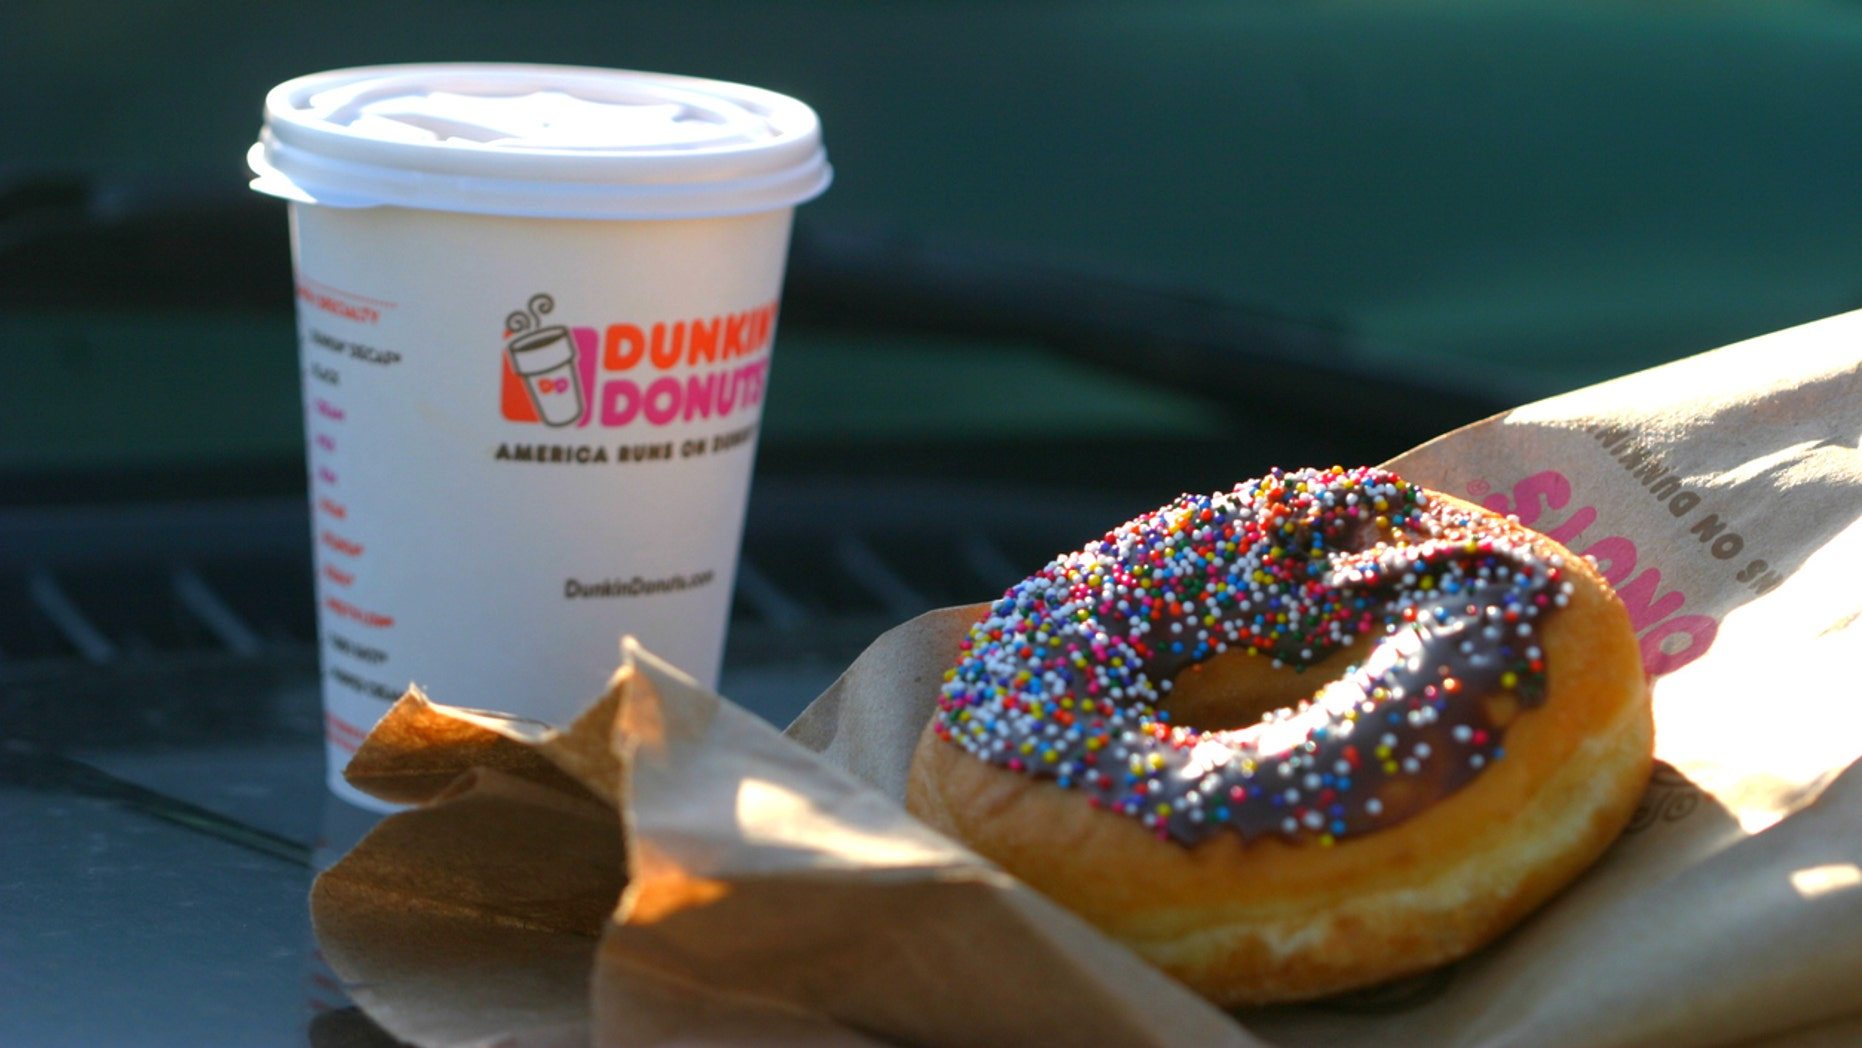 Brooklyn, New York, USA - April 12, 2014: A Dunkin Donuts coffee and doughnut.